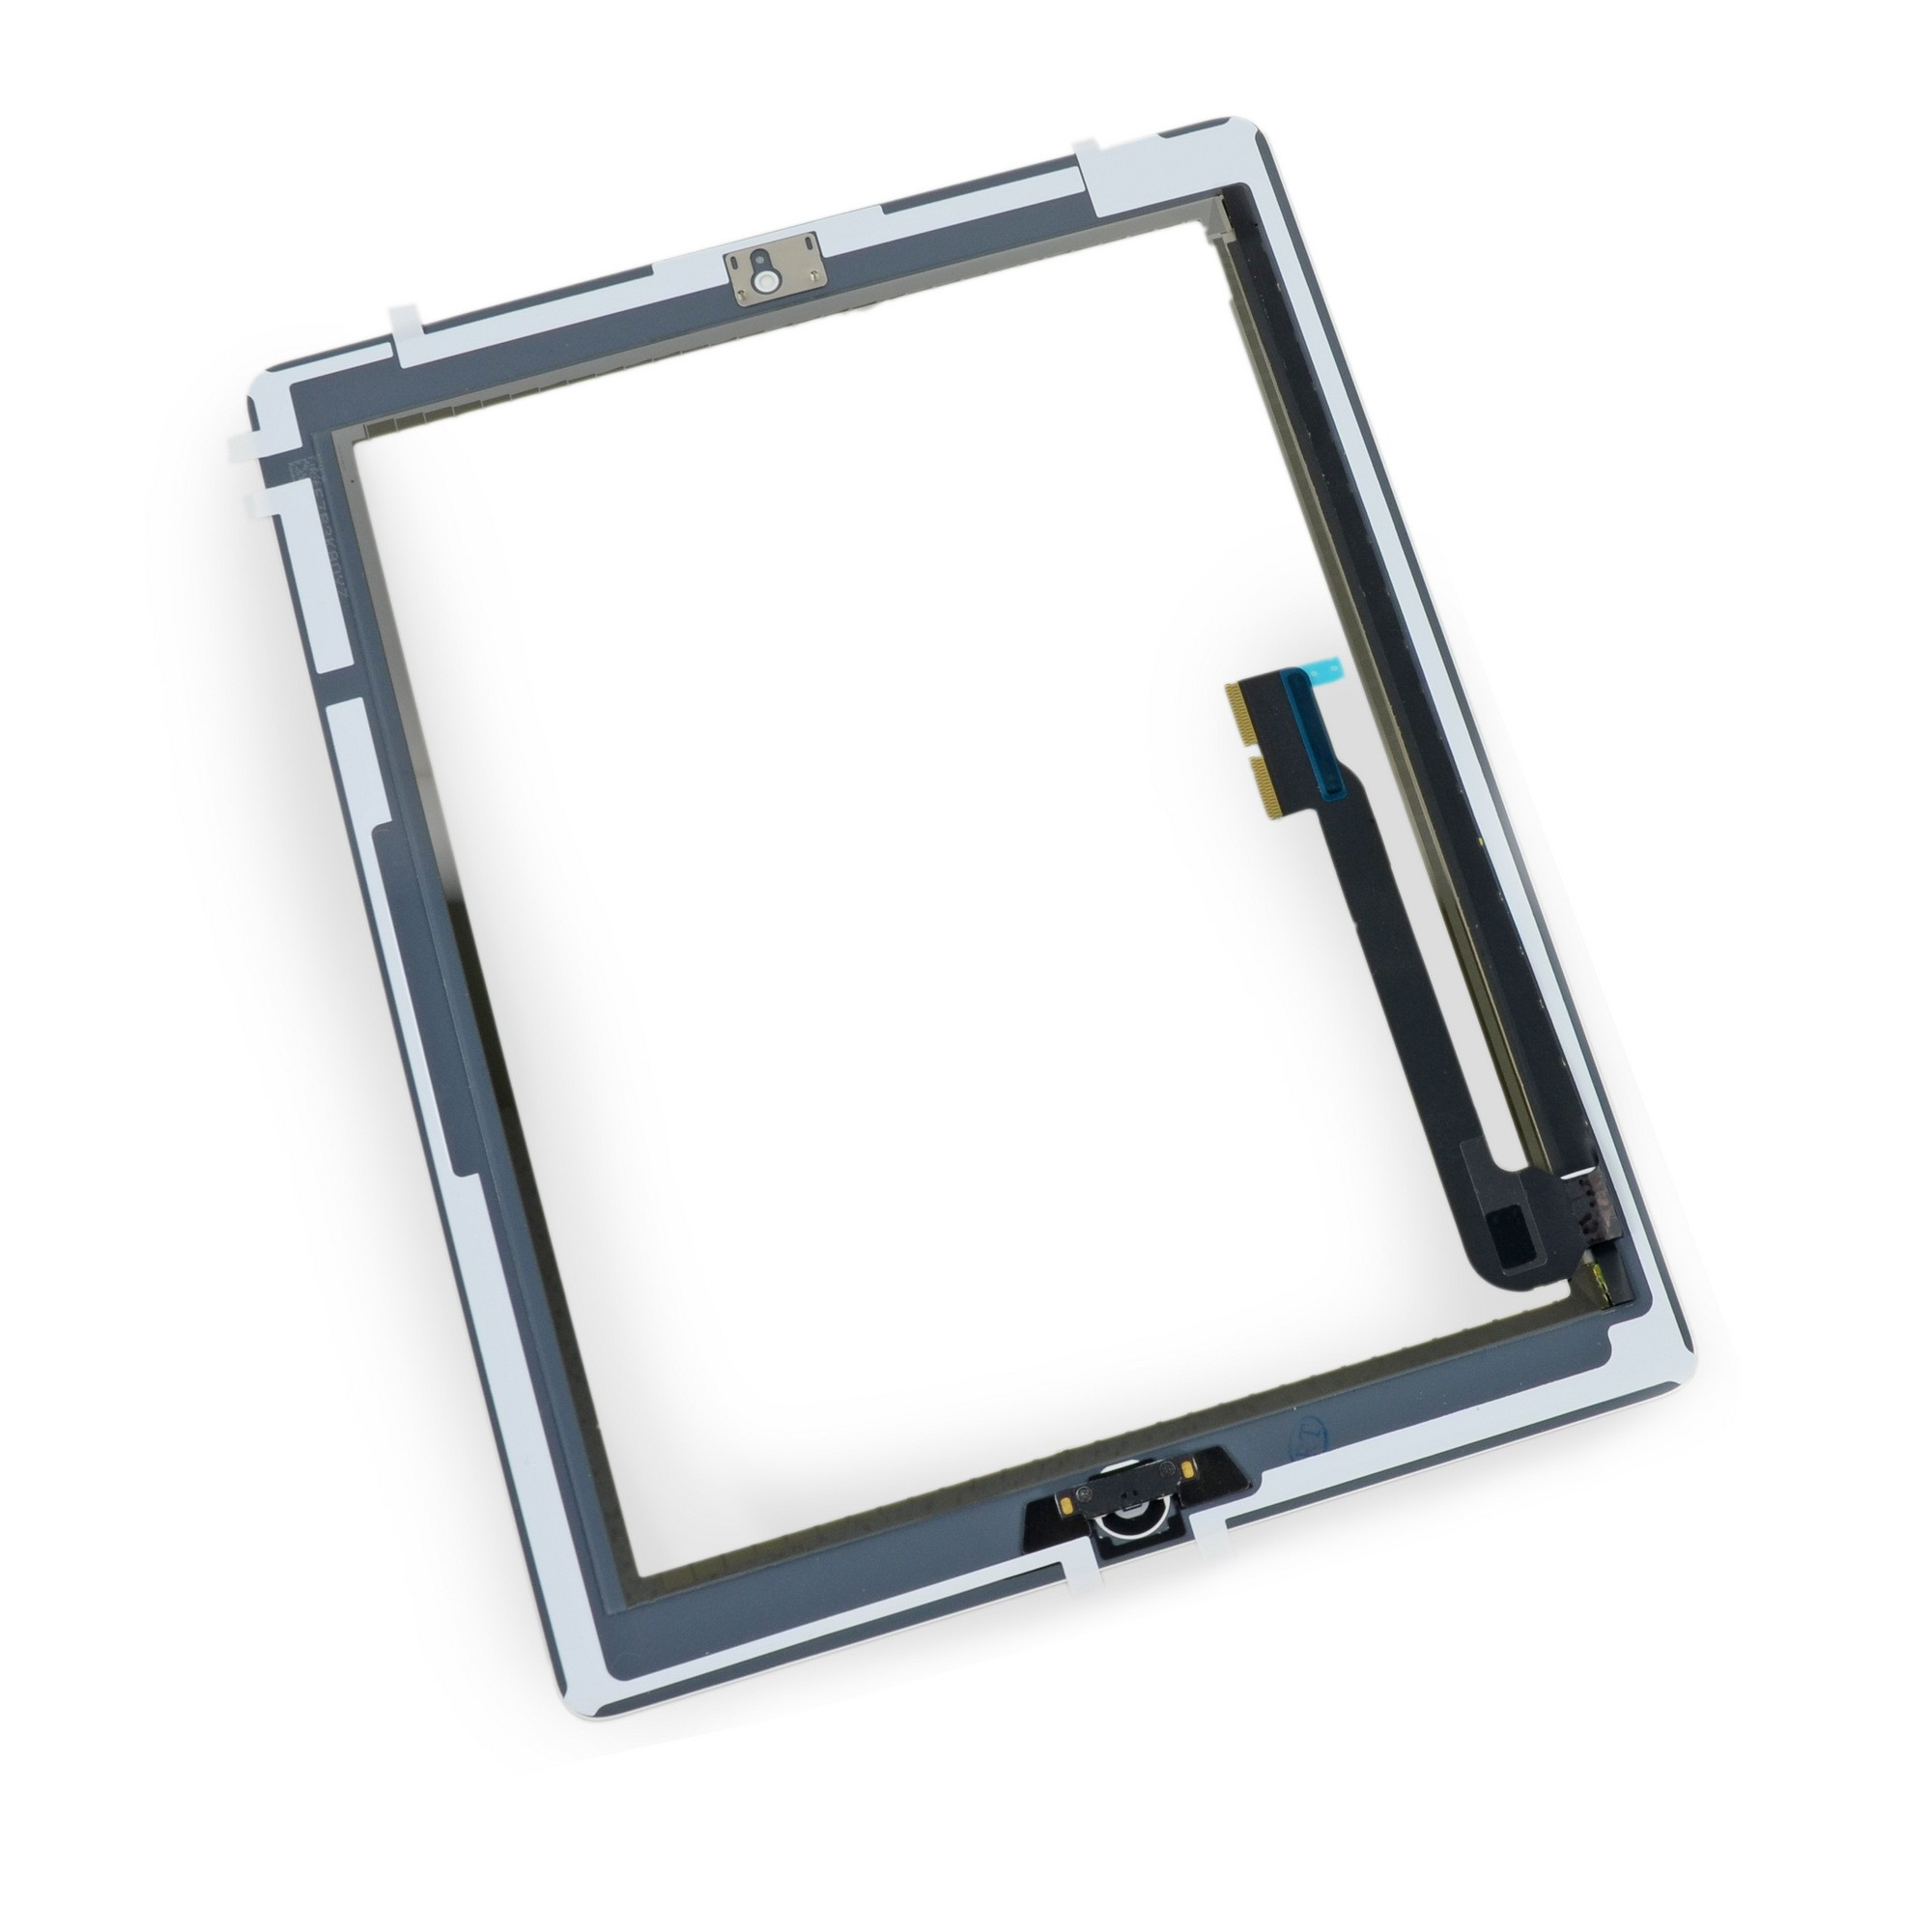 iPad 3 Front Glass/Digitizer Touch Panel Full Assembly, Part Only, New - White, IF116-018-2